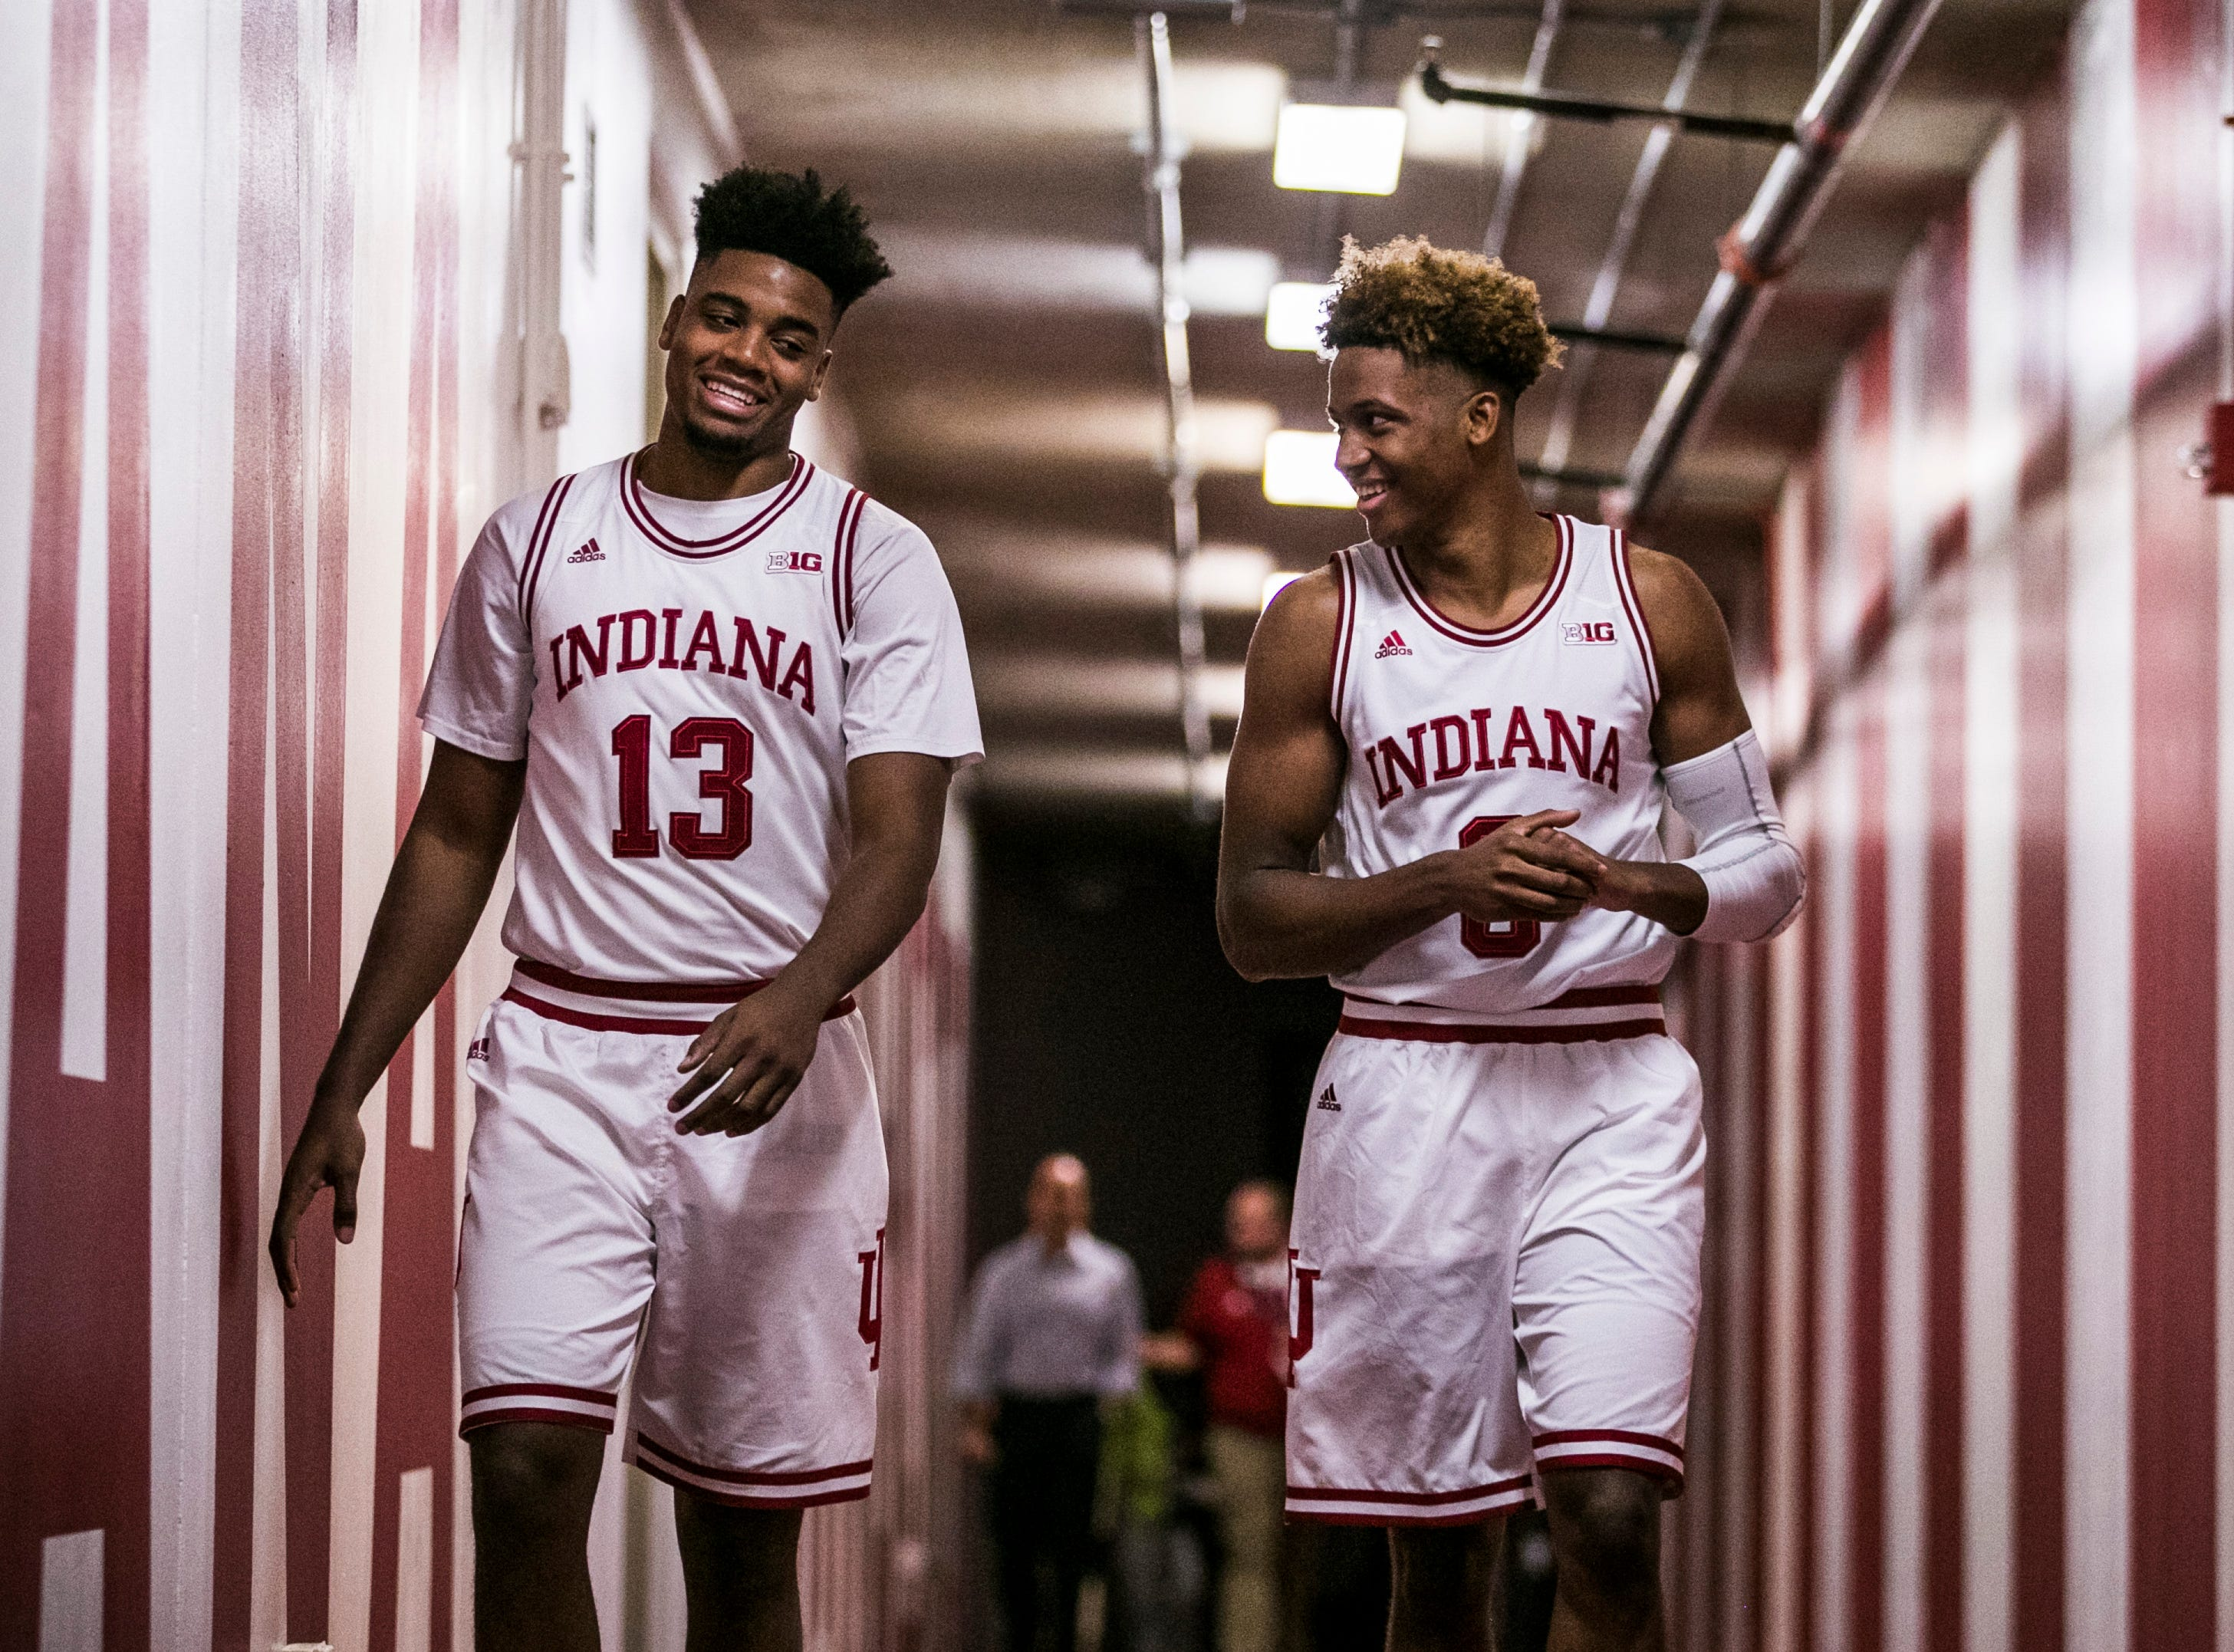 New Albany native Romeo Langford, right, laughs with senior Juwan Morgan as the two head down a tunnel at Cook Center for pictures Sept. 26, 2018. Langford, a Mr. Indiana basketball, has a lot of Hoosier fans hoping he can lead them to a national championship. Sept. 26, 2018